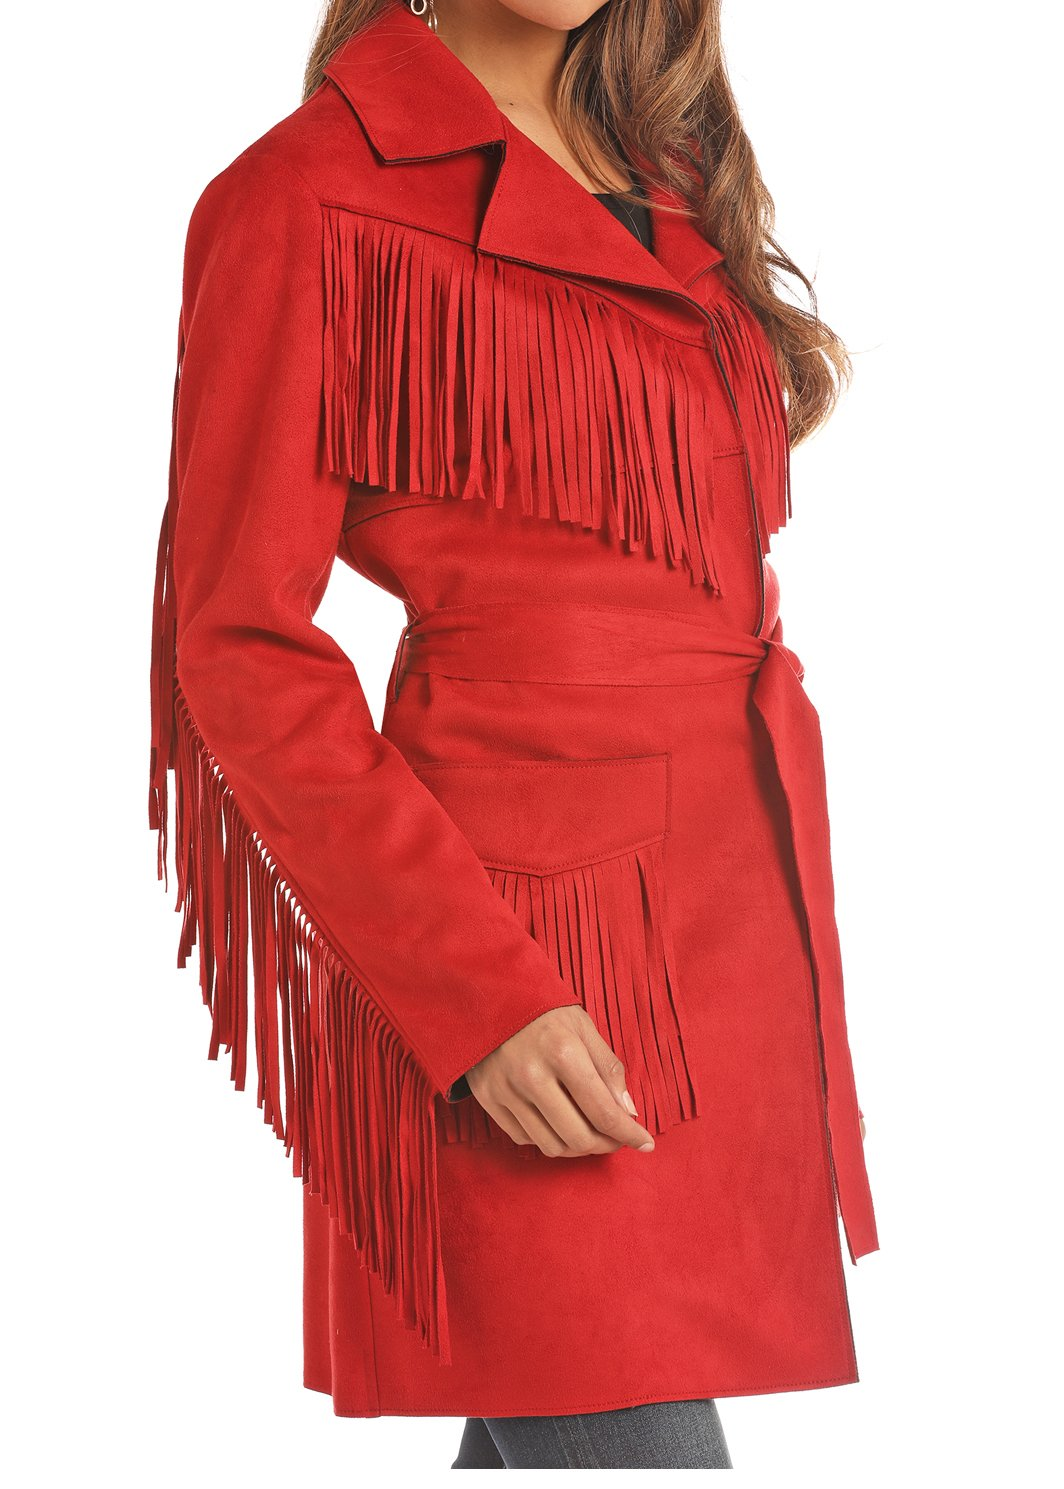 Fringe Faux Suede Jacket from Powder River